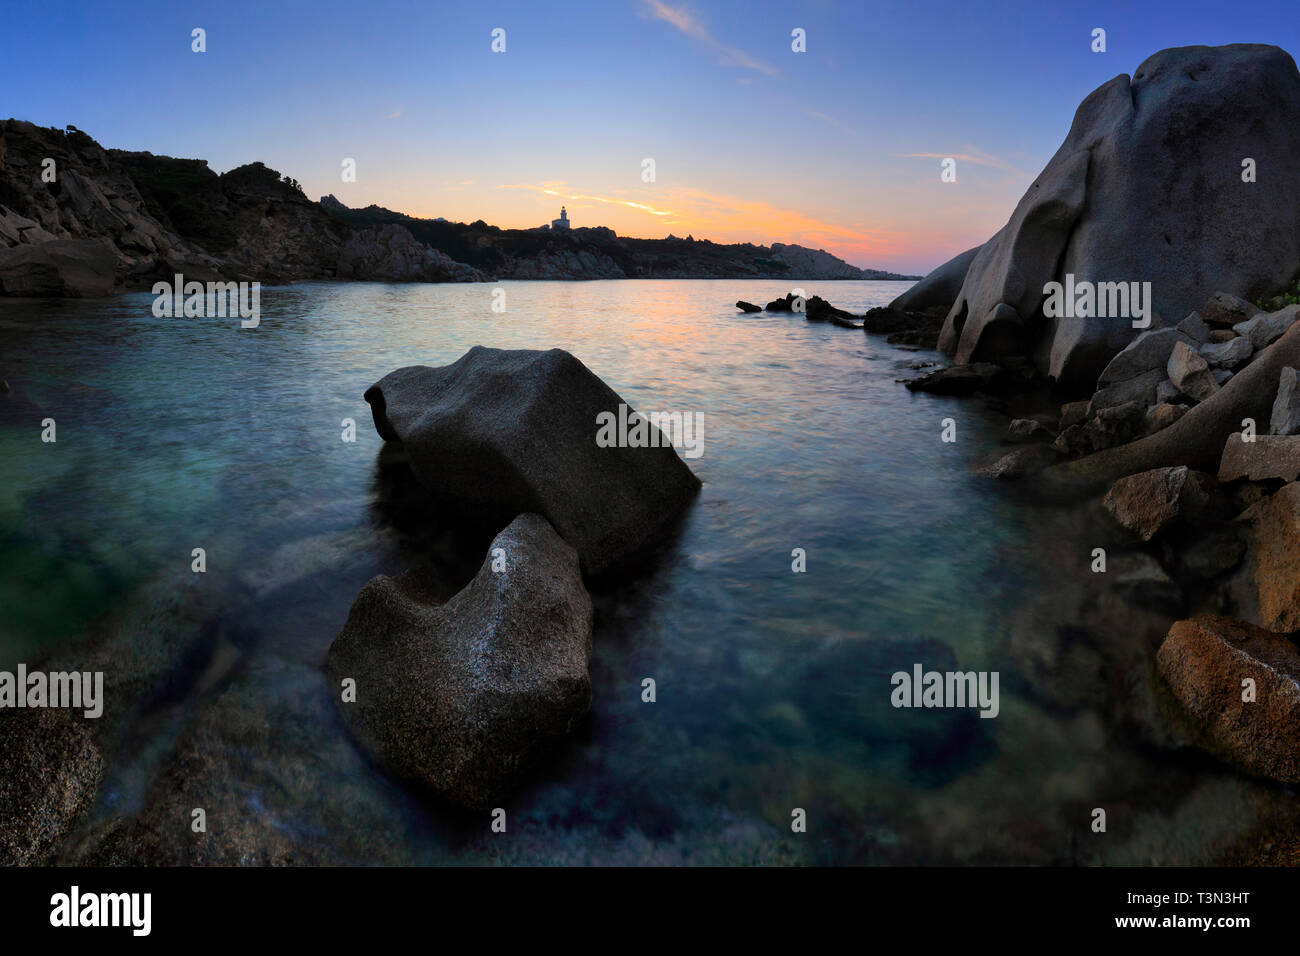 The amazing wind carved rocky sculptures at the beach of Cala Spinosa,a beautiful small bay surrounded by huge granite rocks at Capo Testa in the nort - Stock Image